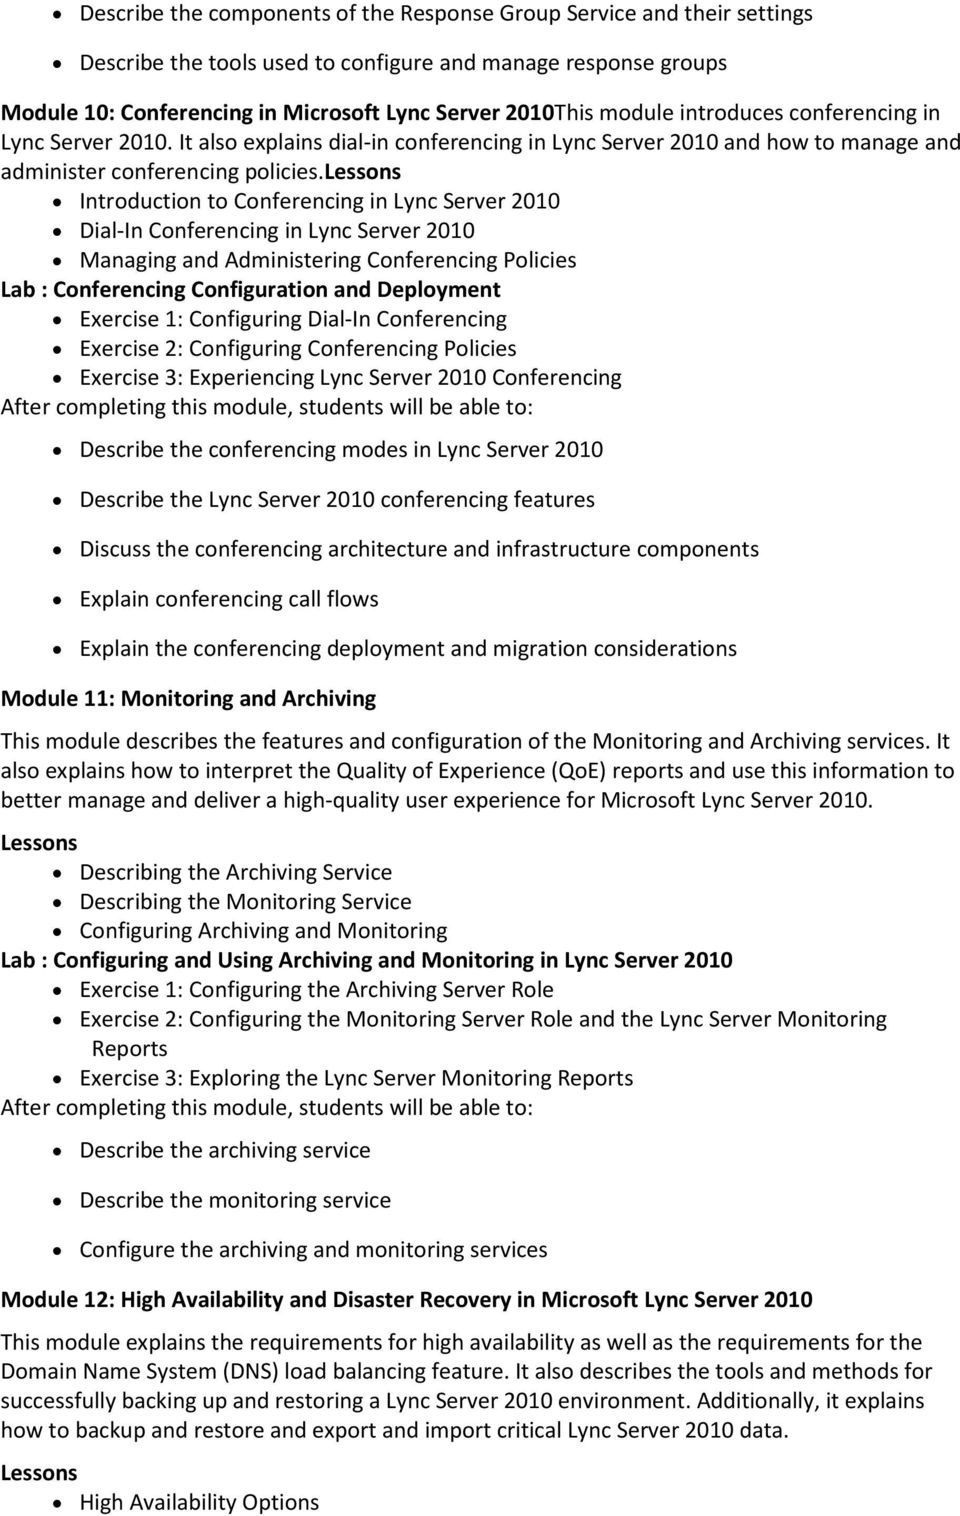 Introduction to Conferencing in Lync Server 2010 Dial-In Conferencing in Lync Server 2010 Managing and Administering Conferencing Policies Lab : Conferencing Configuration and Deployment Exercise 1: